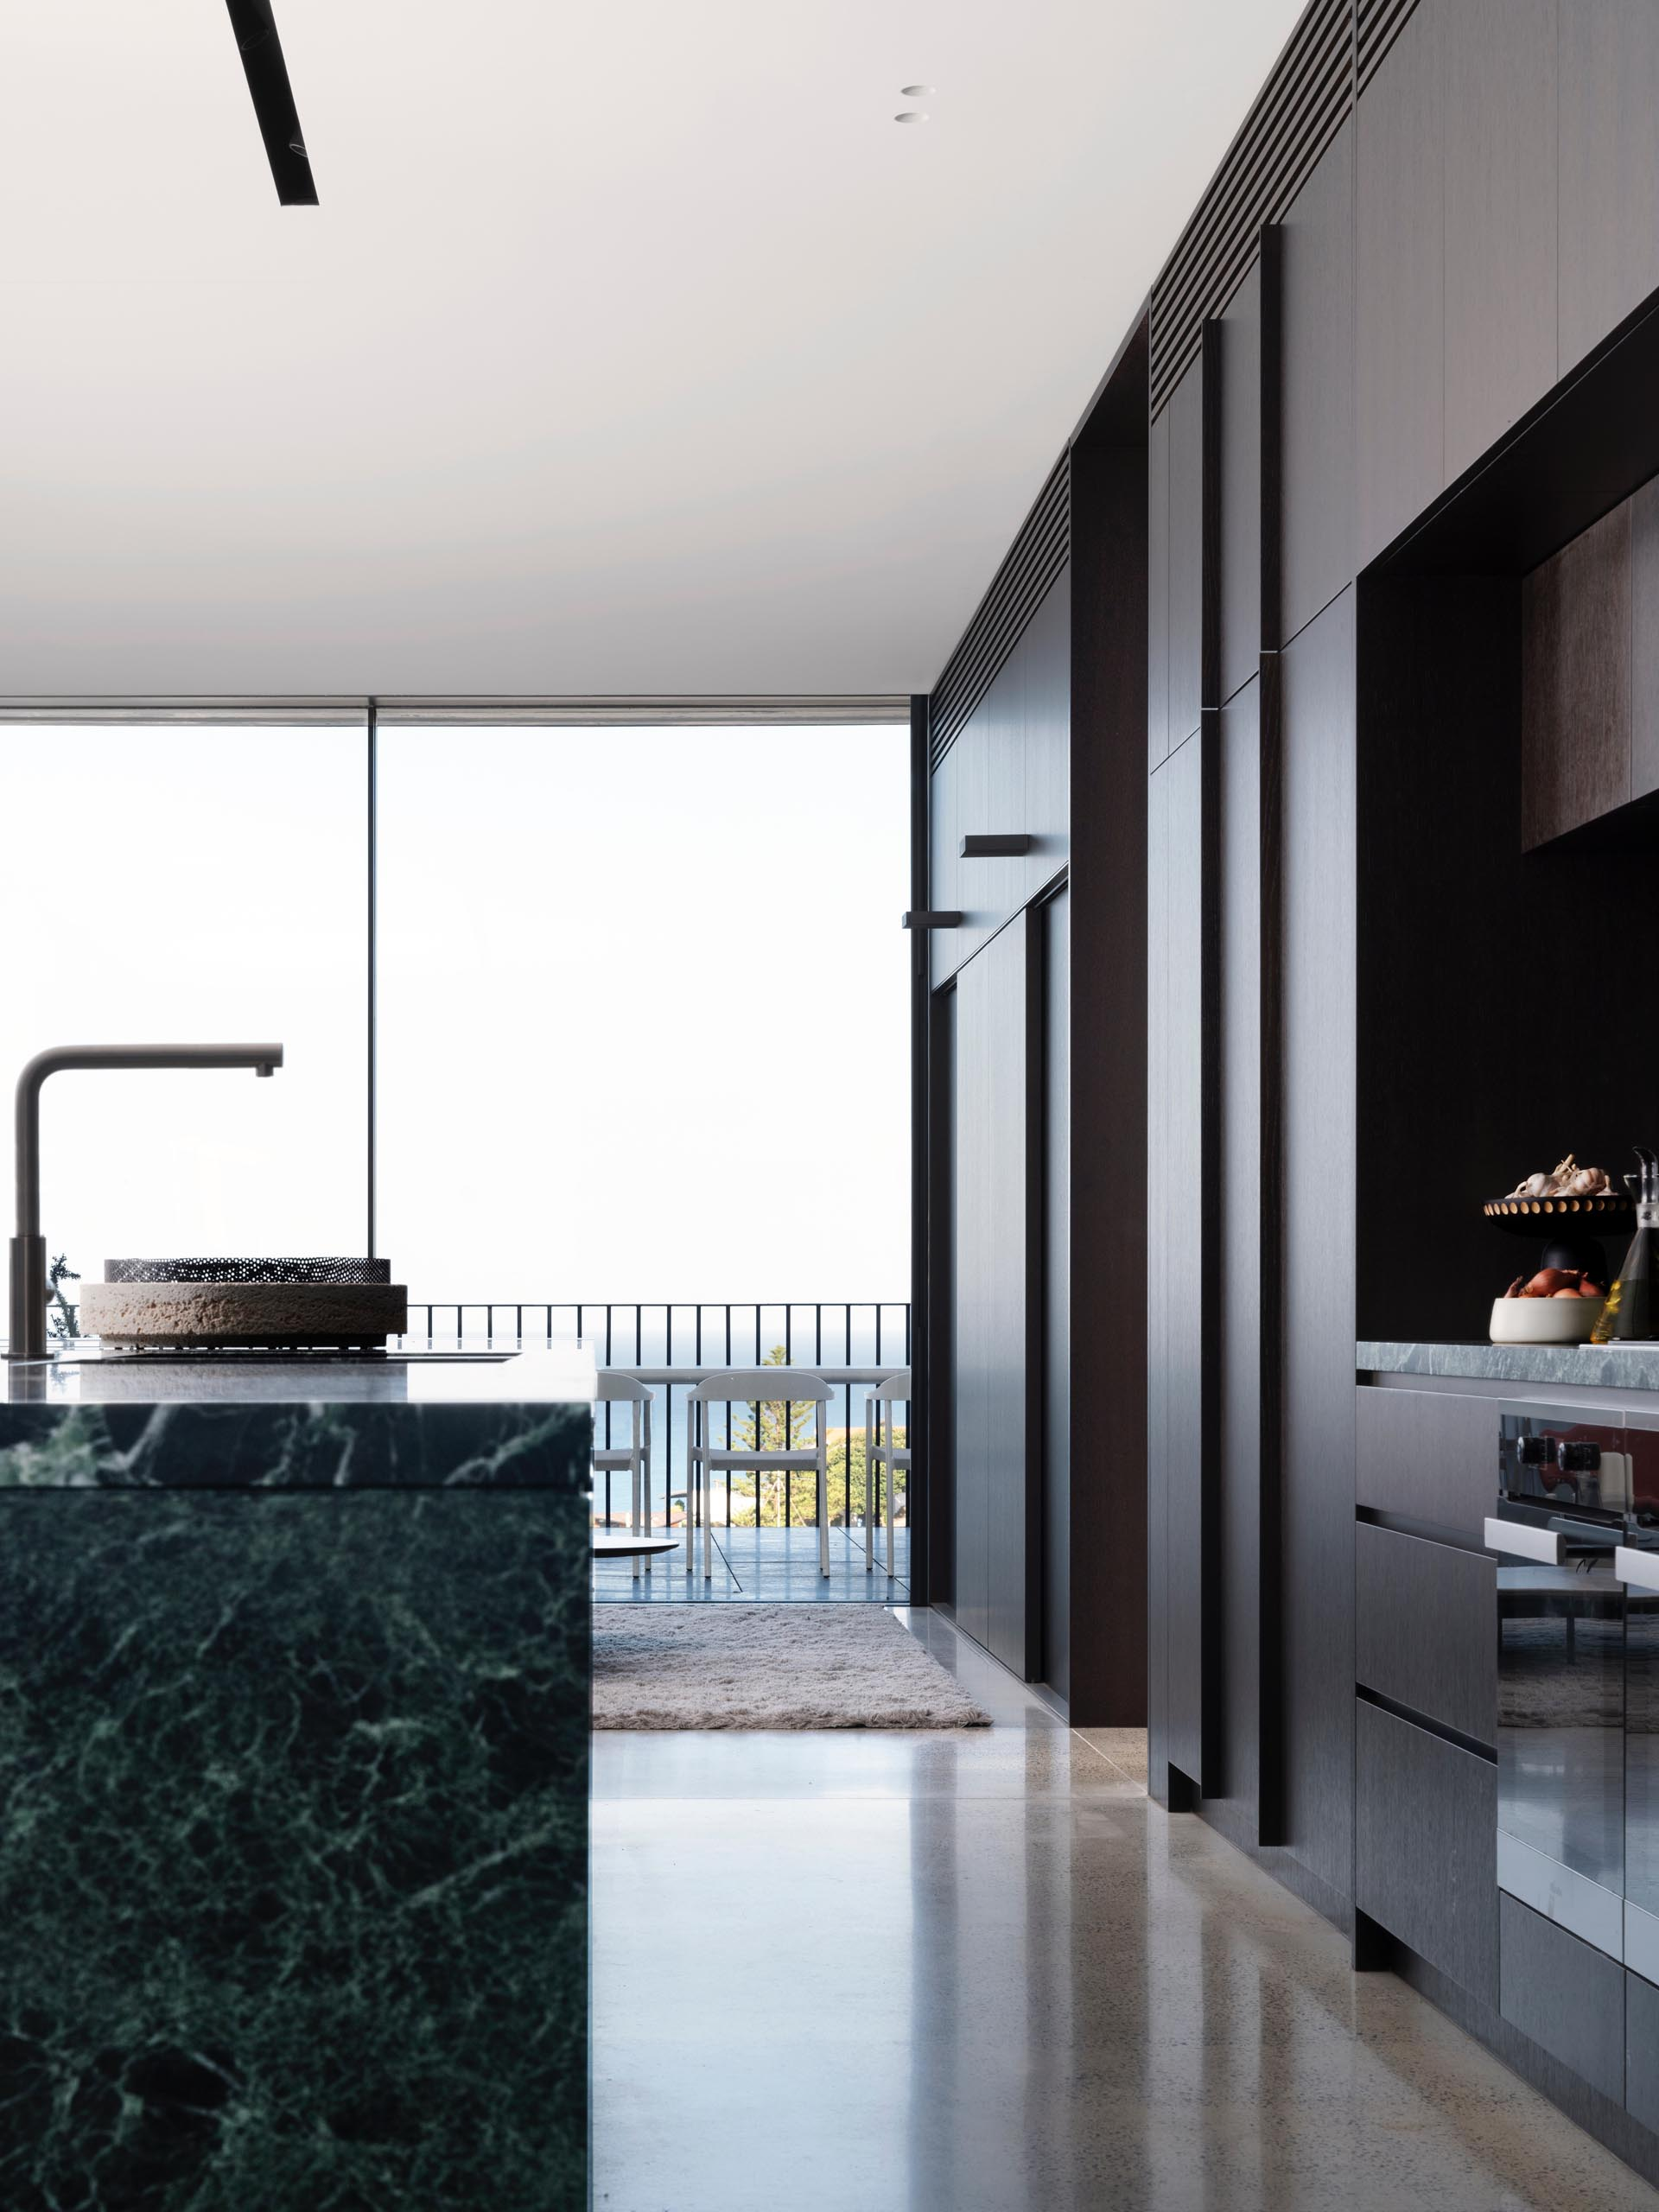 In this modern kitchen, dark wood cabinets complement the gray/black feature marble used on the island and backsplash.